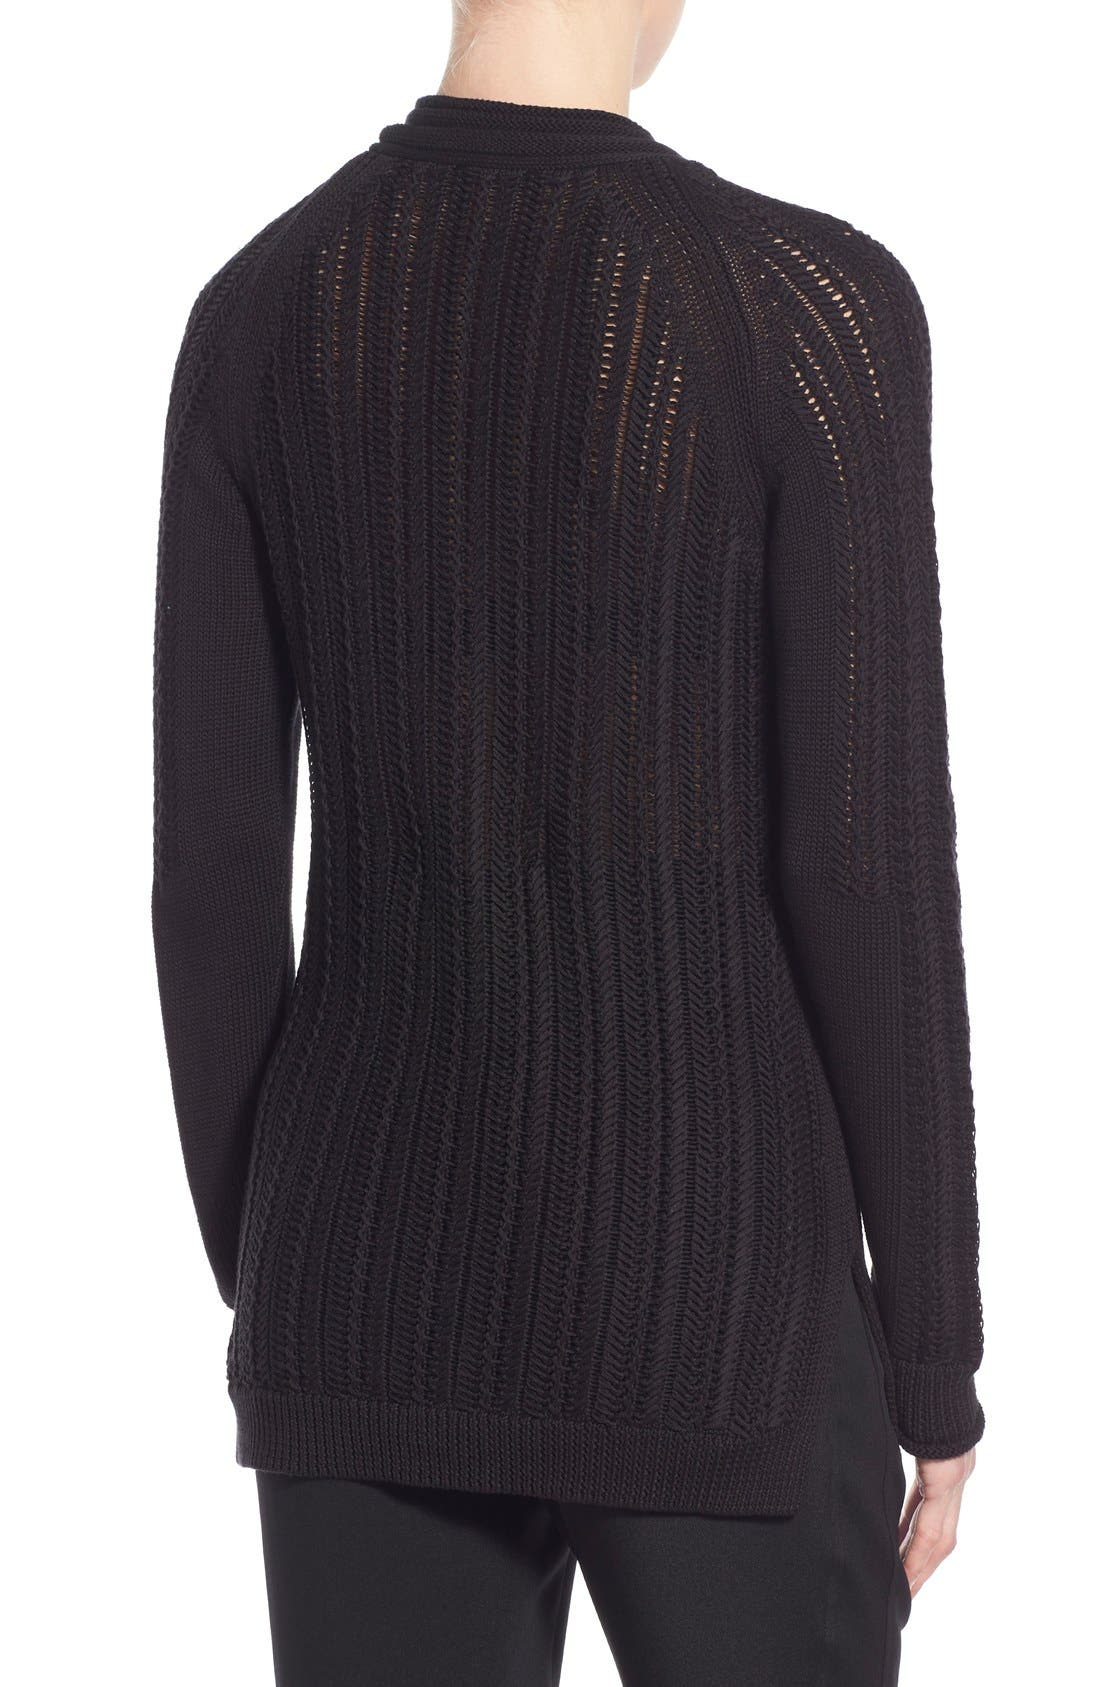 'Daria' Lace Up Textured V-Neck Sweater,                             Alternate thumbnail 5, color,                             001